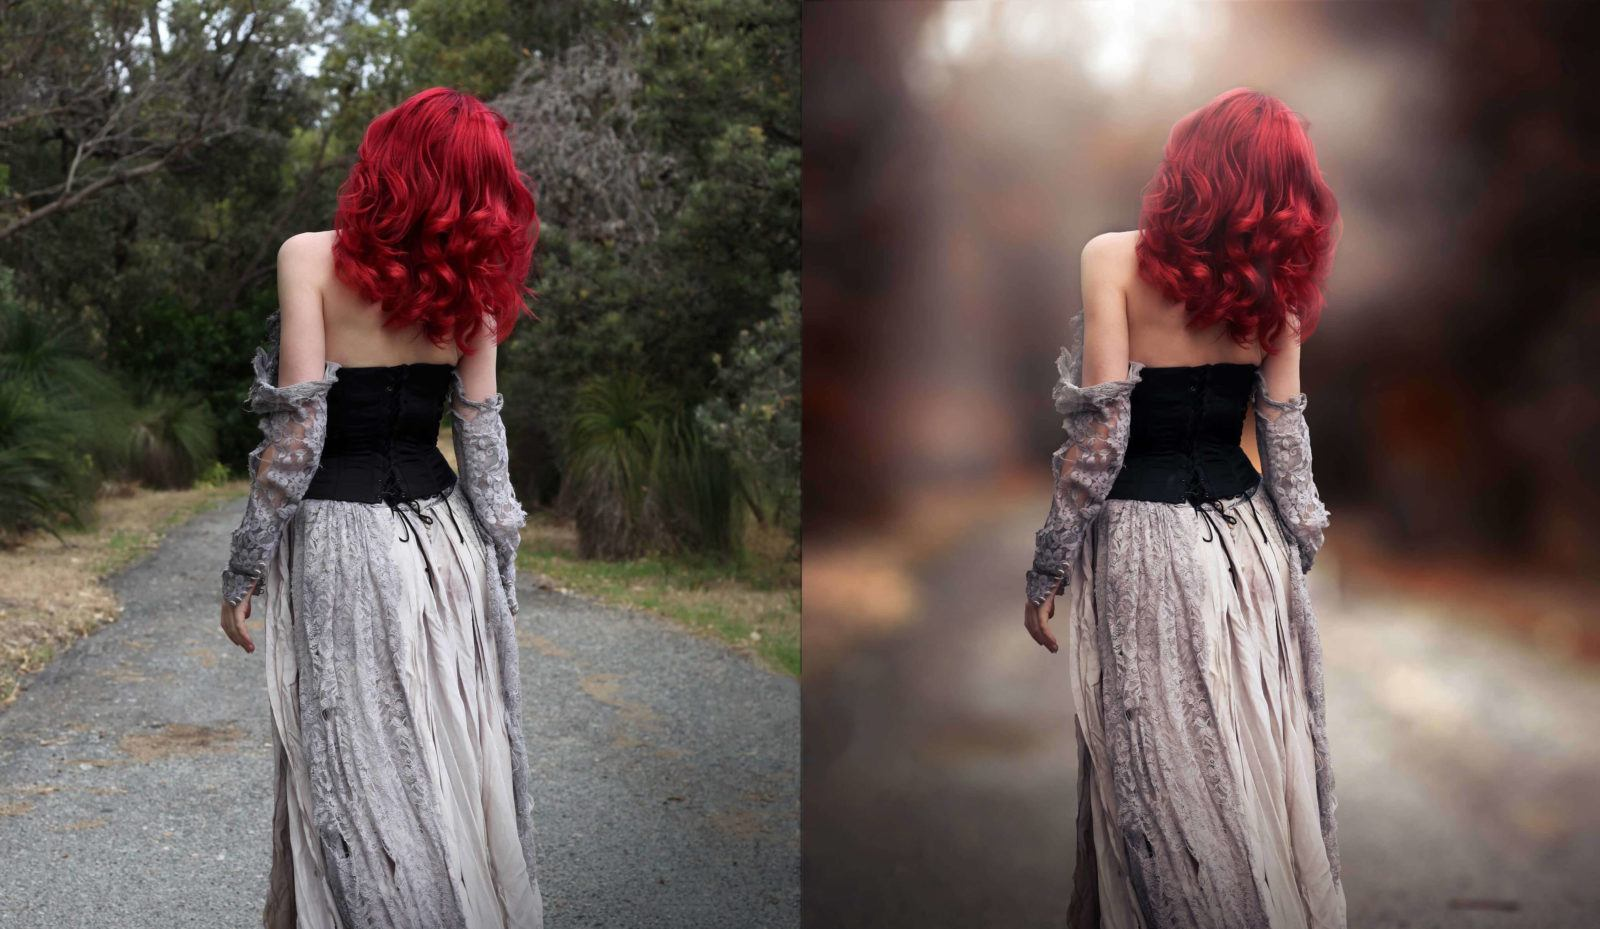 These Before And After Pictures Reveal Photoshop Can Actually Change Anything